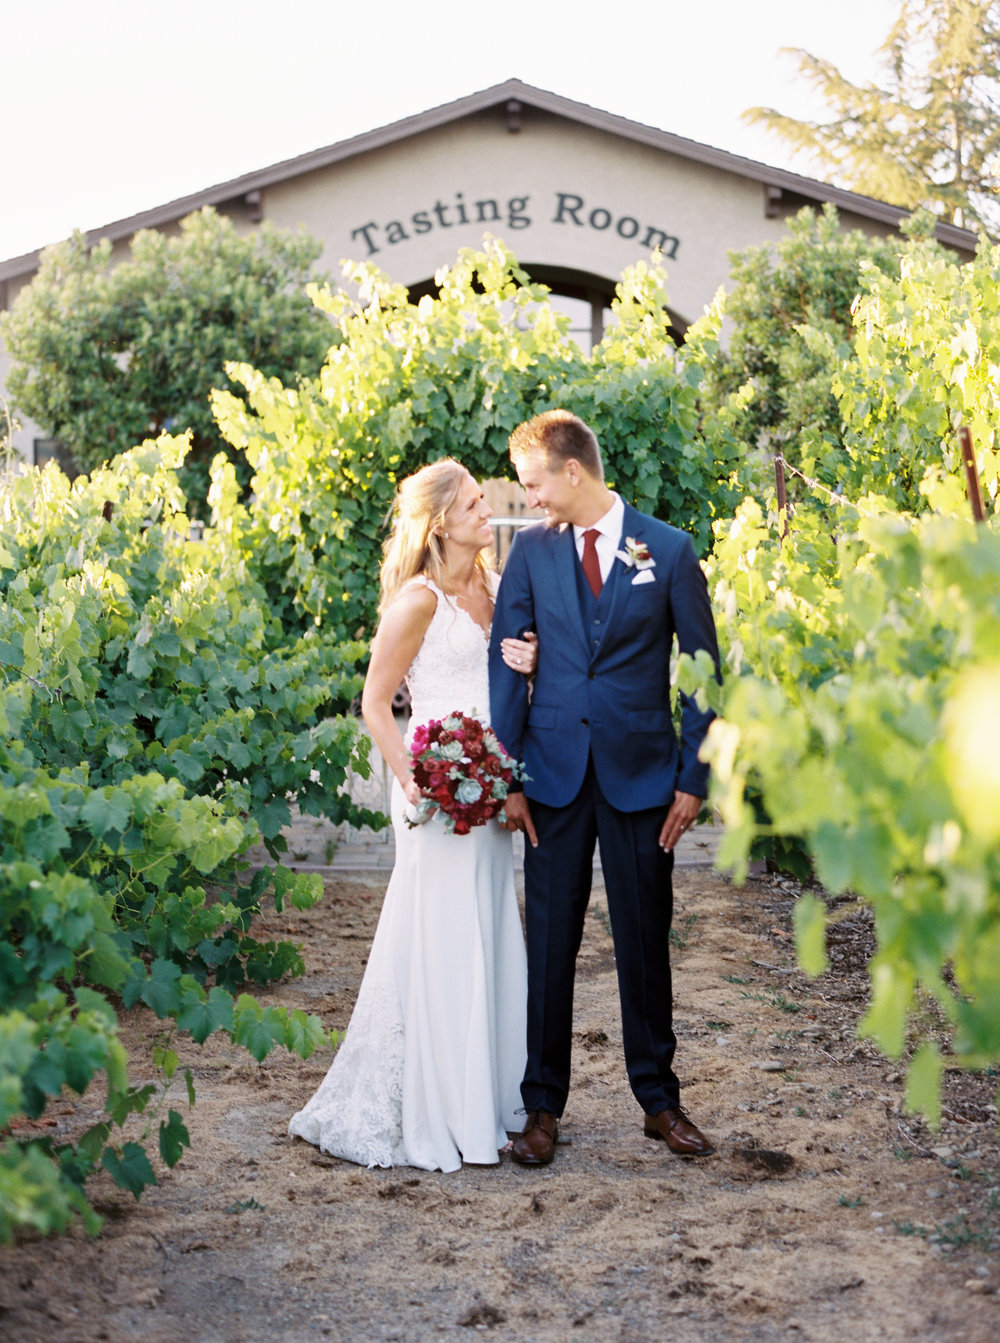 Crooked-vine-winery-wedding-in-livermore-california-67.jpg